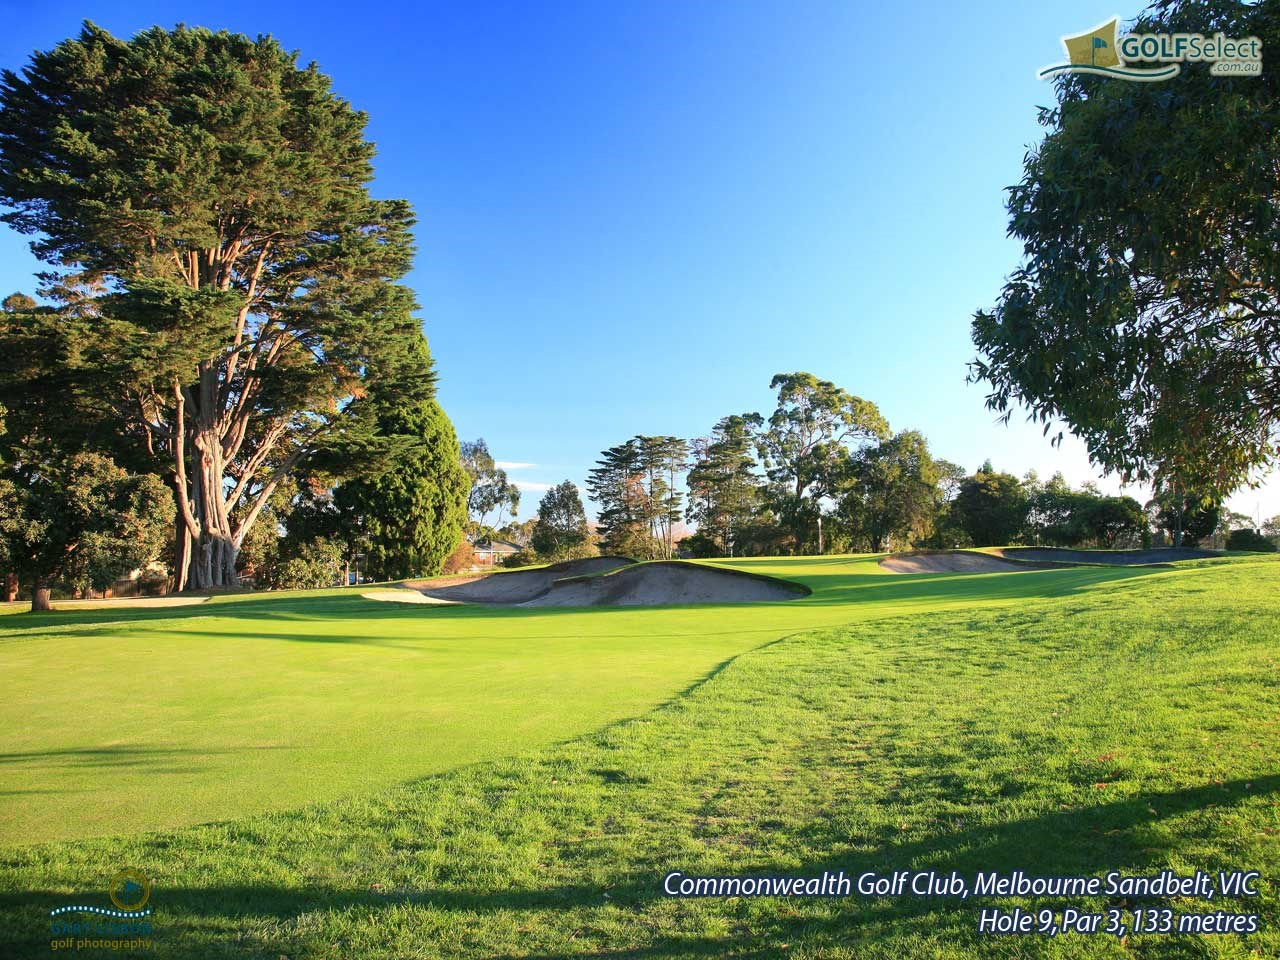 Commonwealth Golf Club Hole 9, Par 3, 133 metres